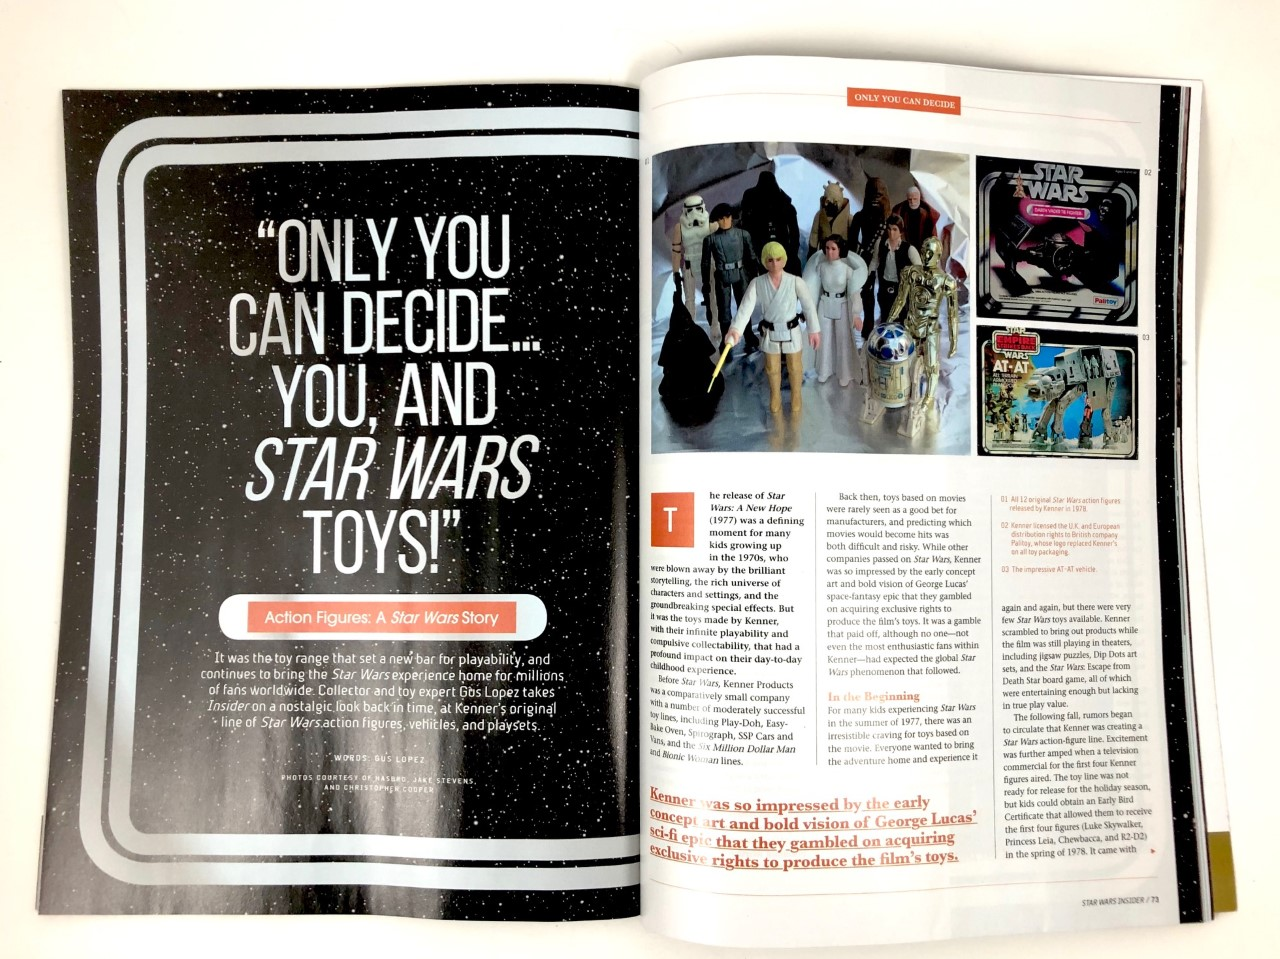 """Action Figures: A Star Wars Story"" Insider #189"